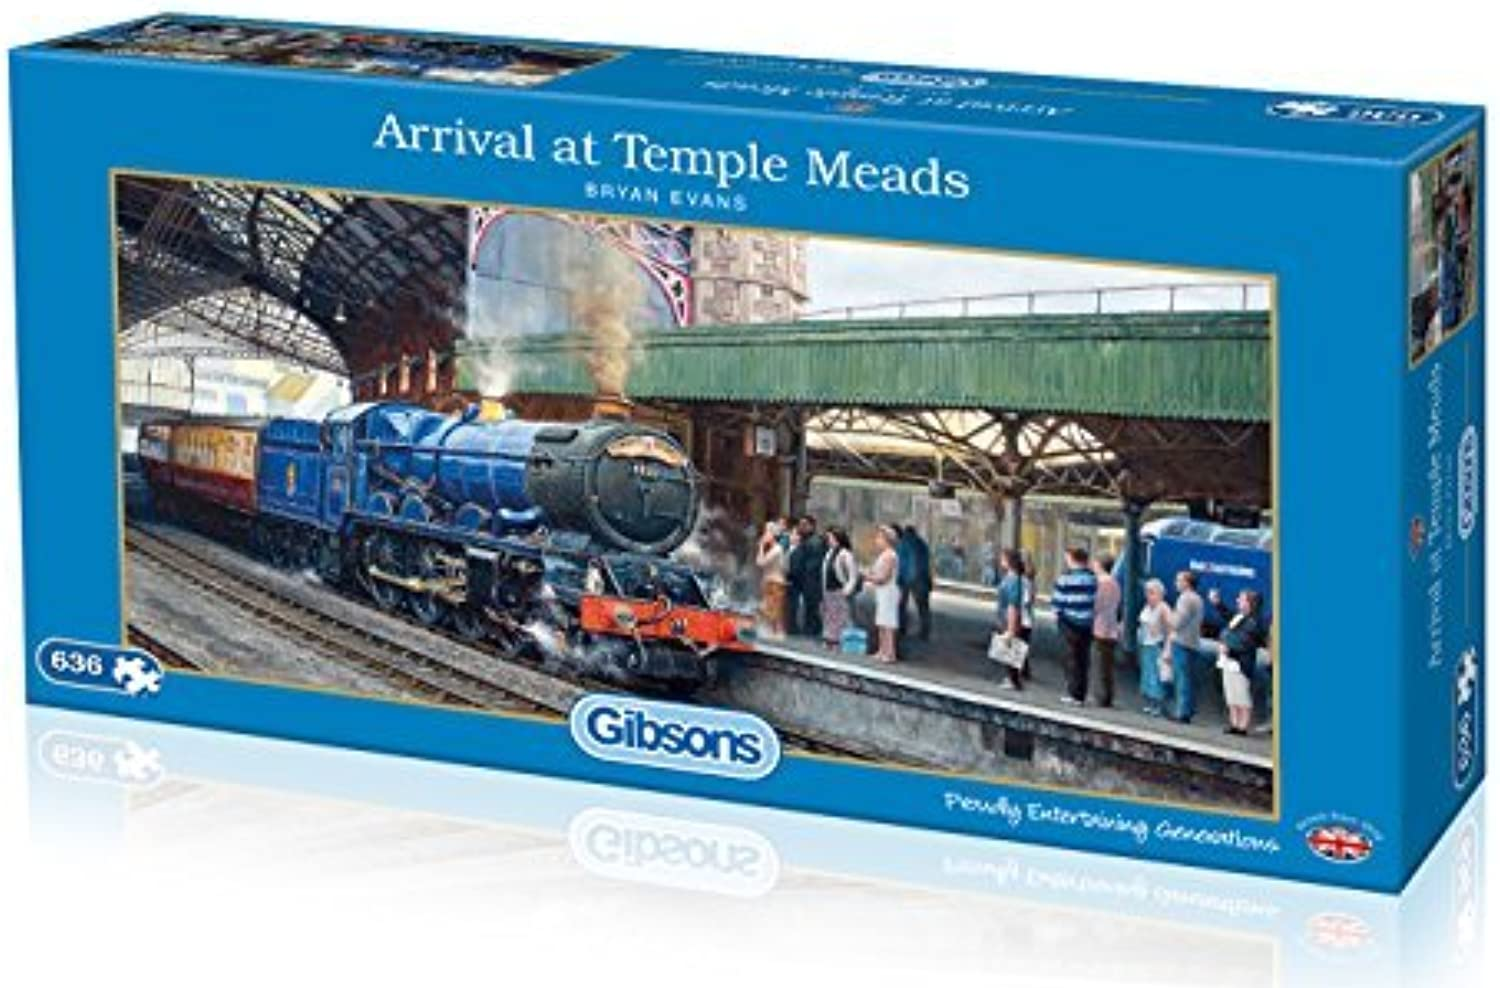 Gibsons Arrival at Temple Meads Jigsaw Puzzle (636-Piece) by Gibsons